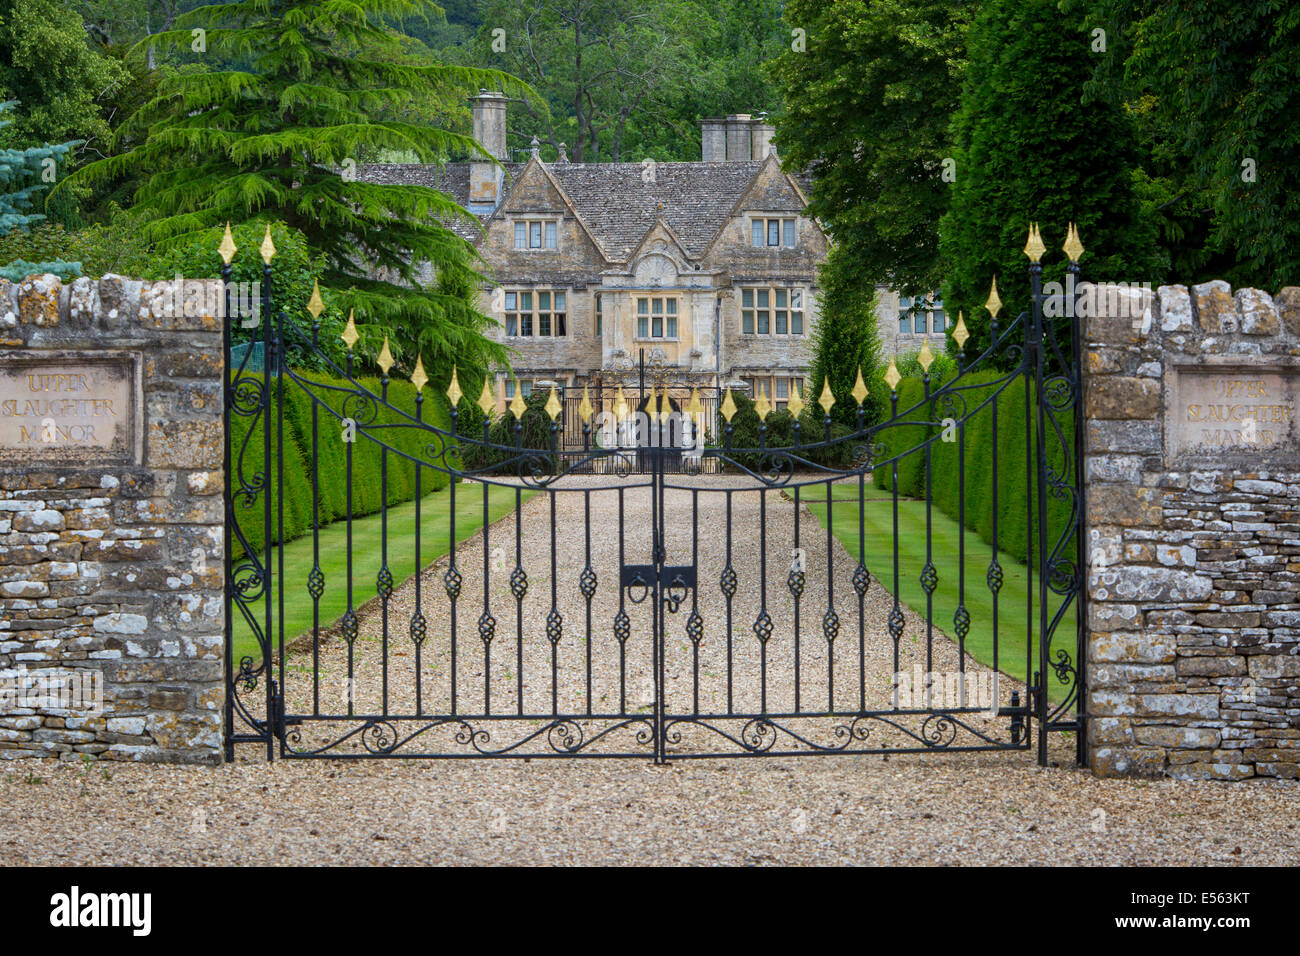 Upper Slaughter Manor House, the Cotswolds, Upper Slaughter, Glocestershire, England - Stock Image